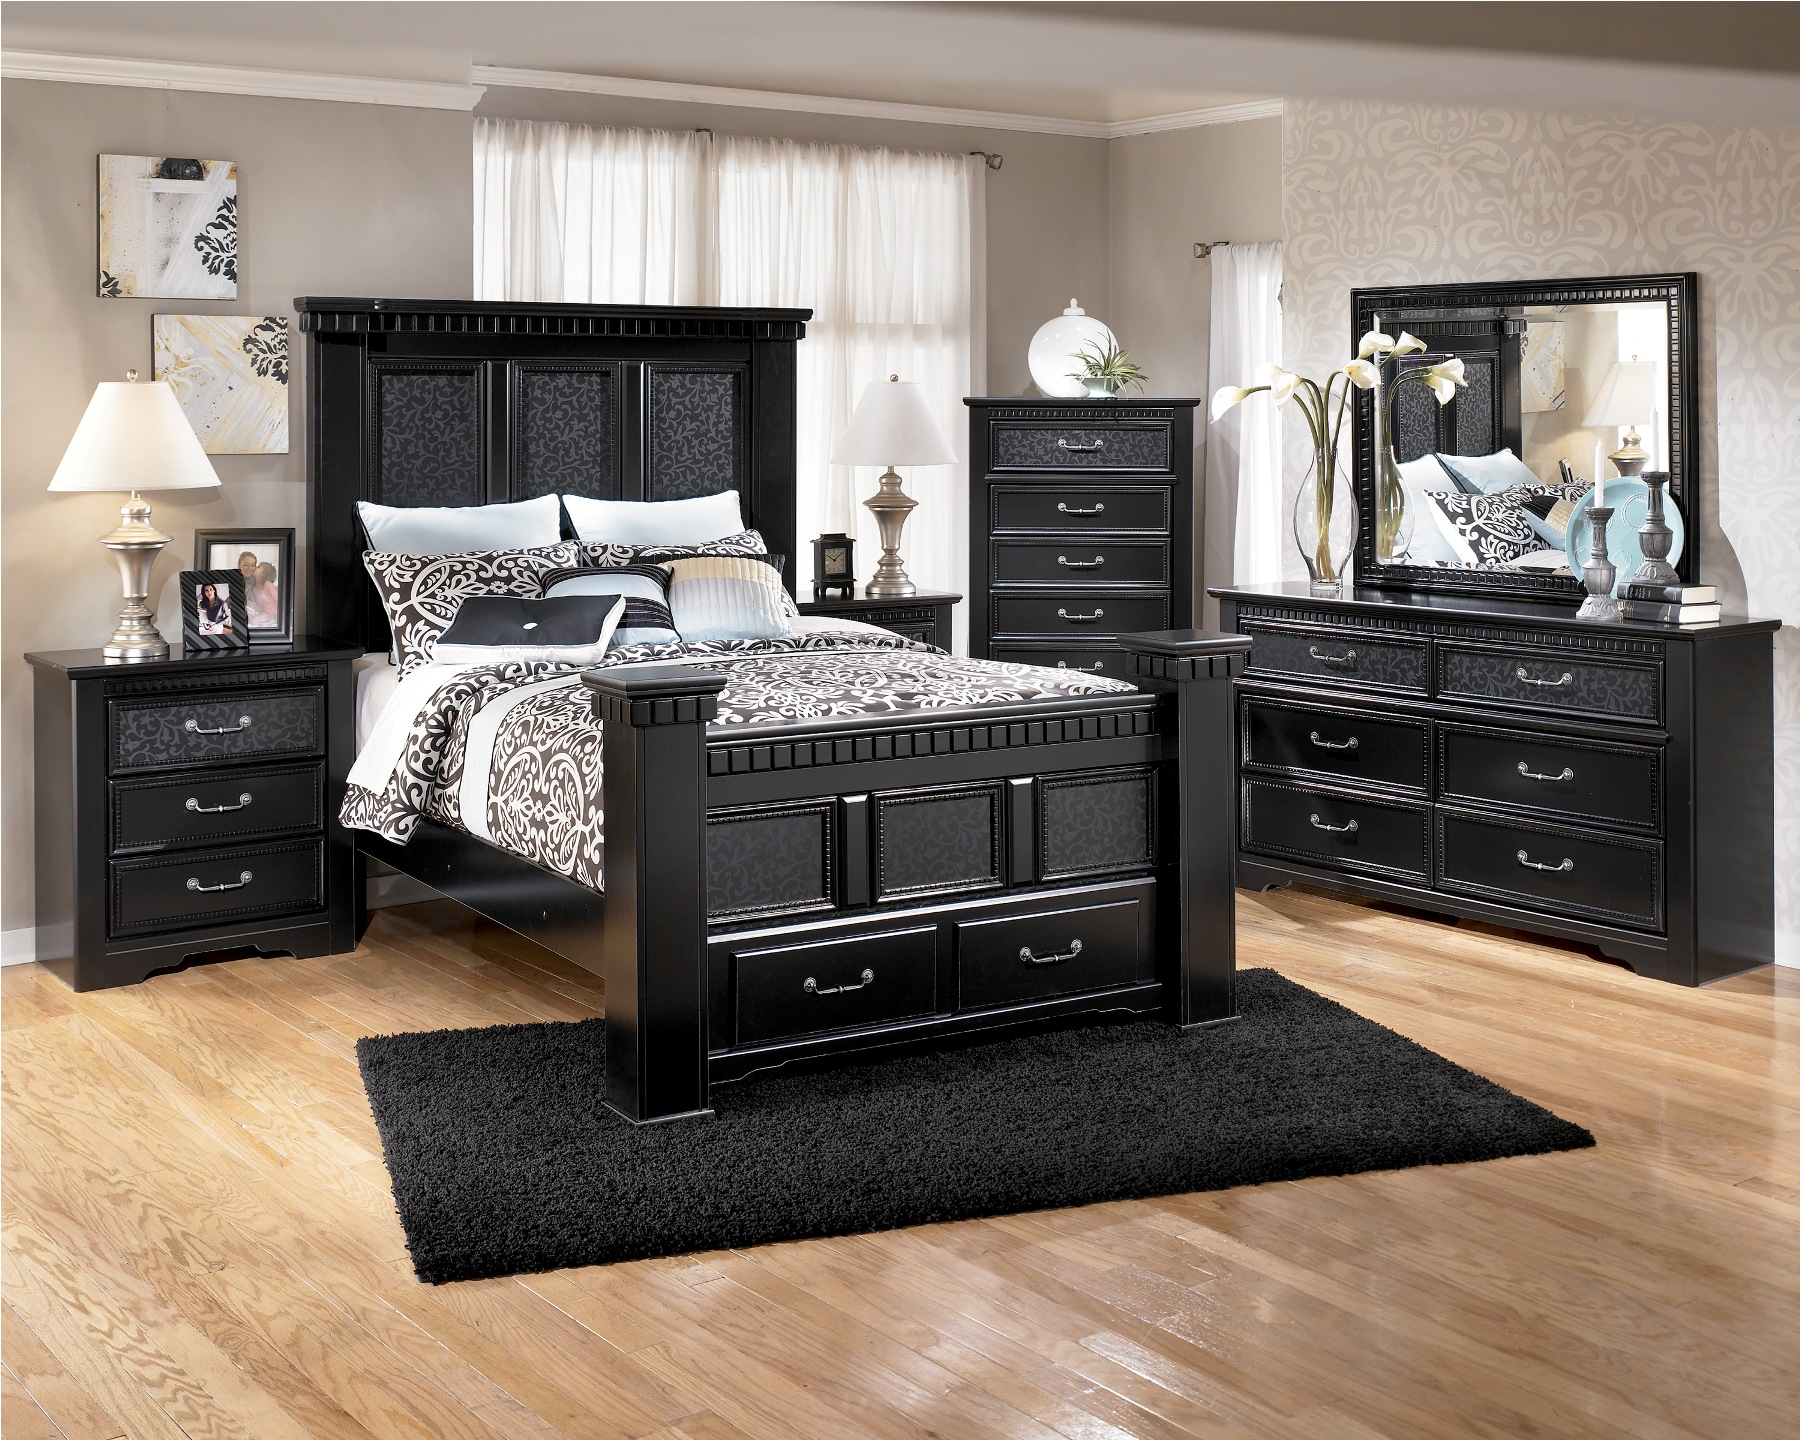 bedroom chair ideas best small gaming 25 furniture design